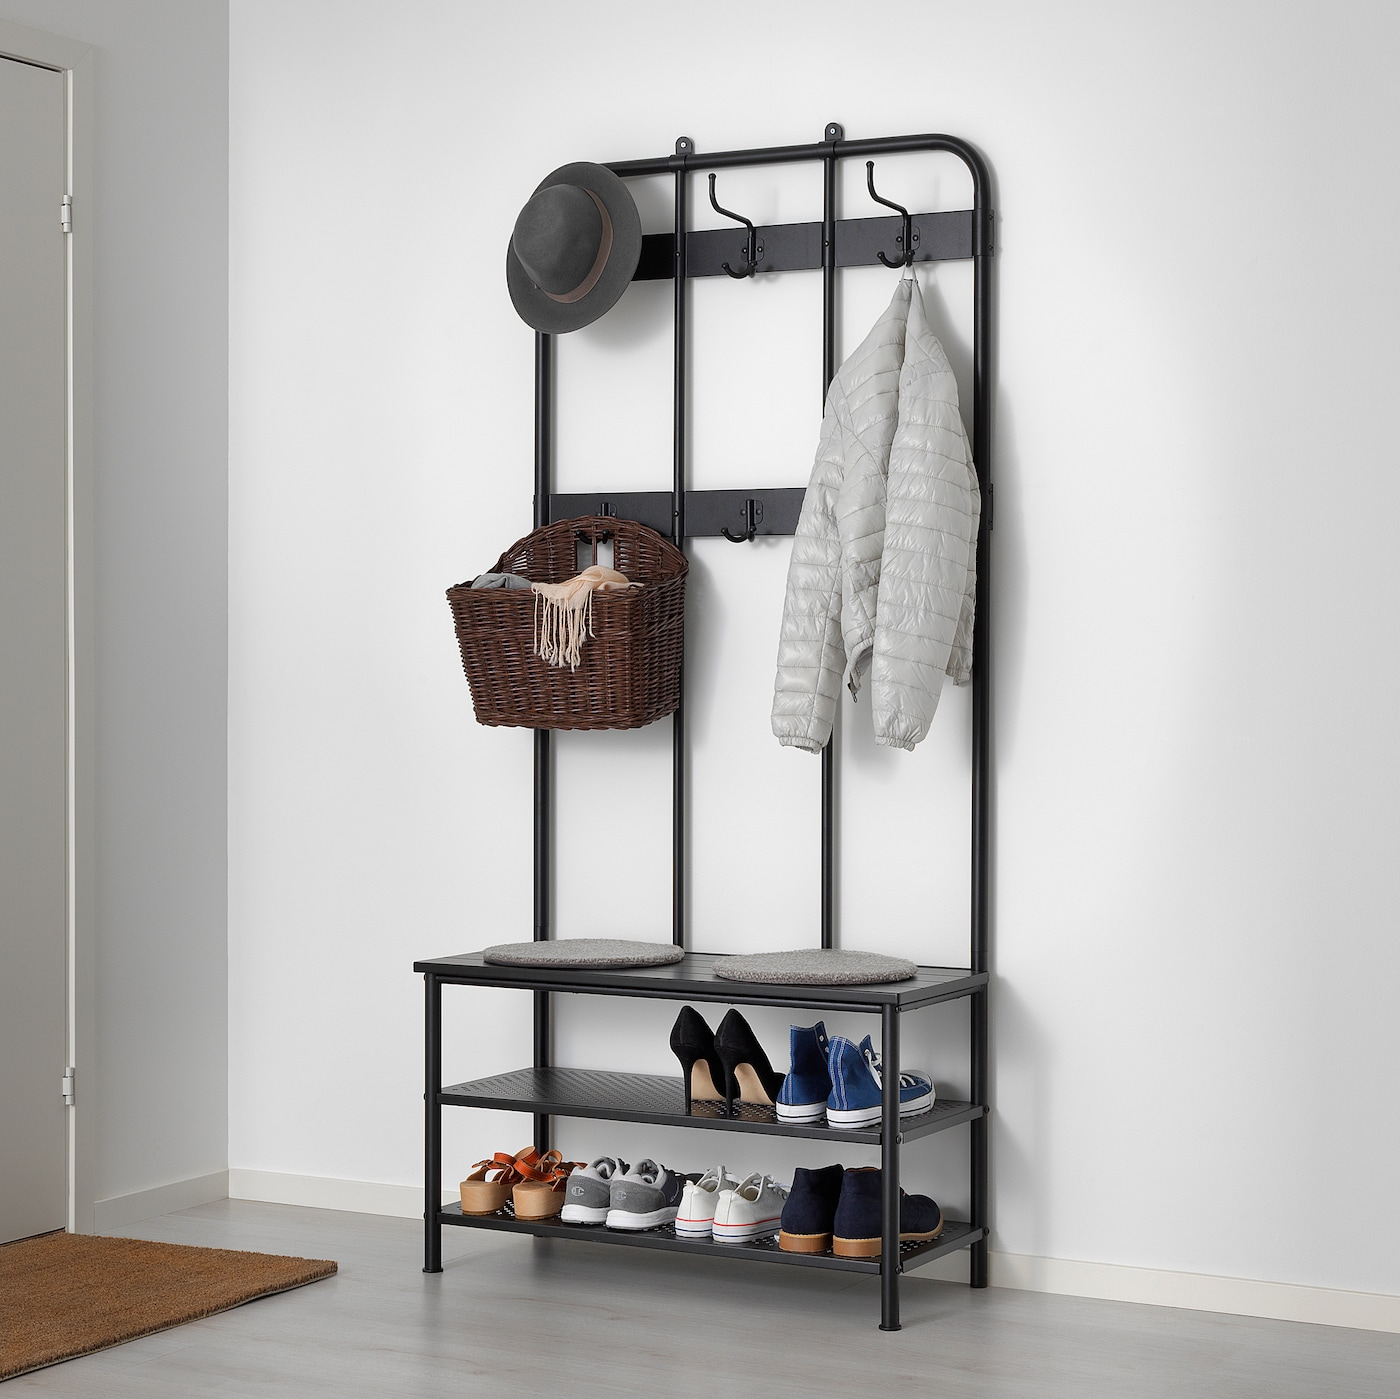 Pinnig Coat Rack With Shoe Storage Bench Black Width 90 Cm Ikea